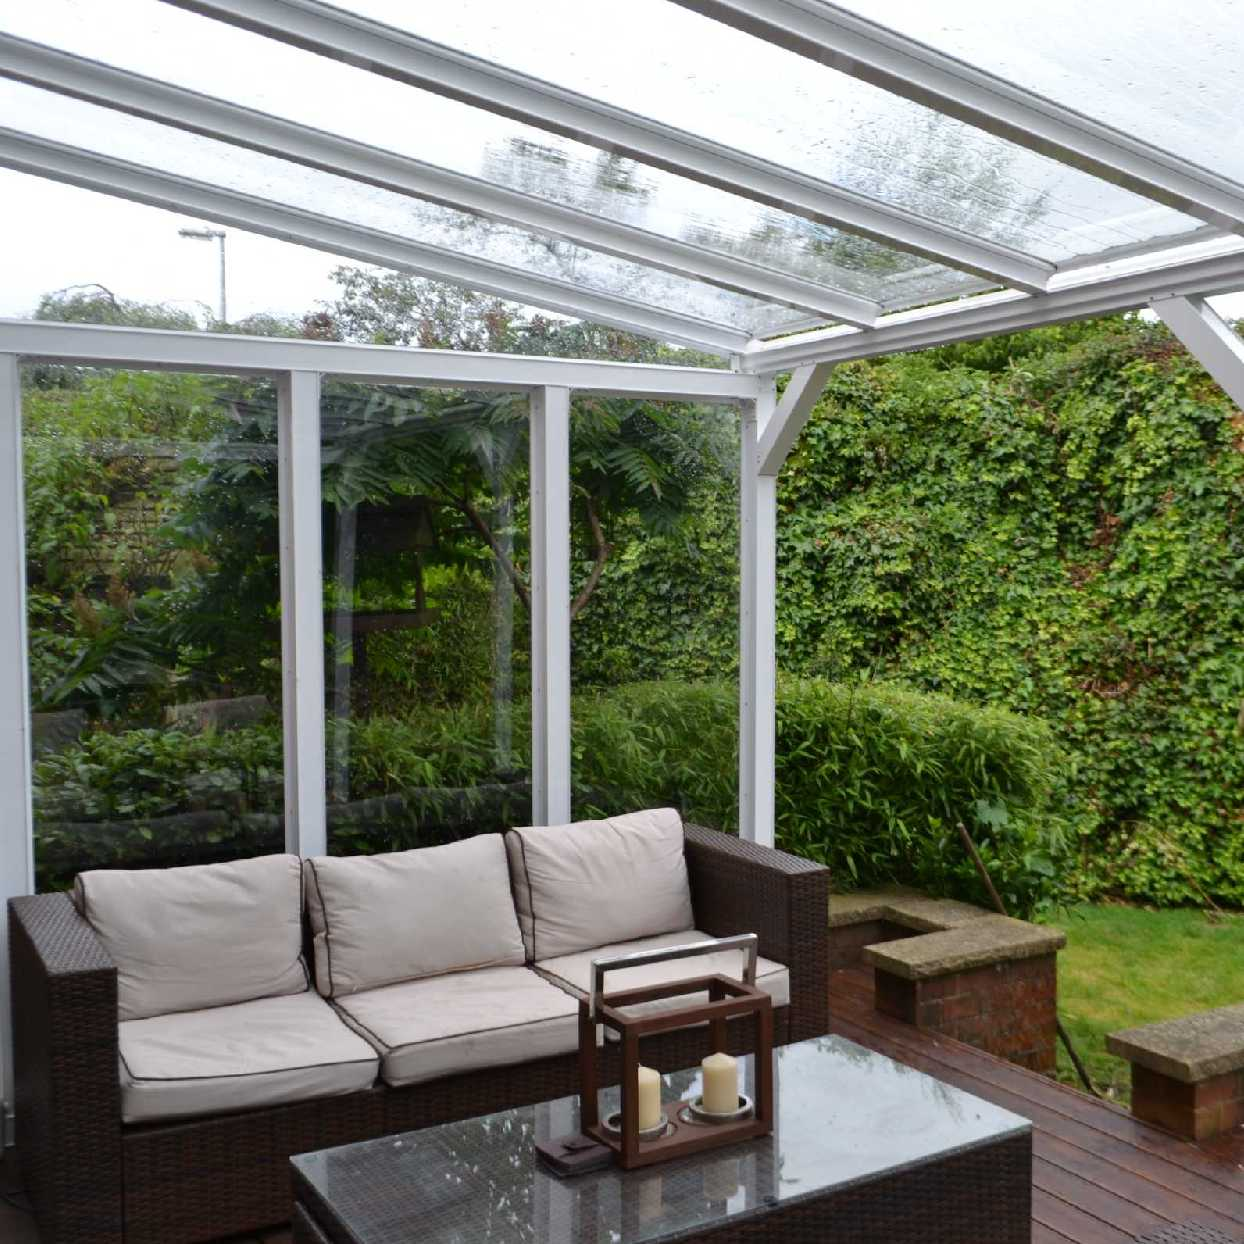 Omega Smart White Lean-To Canopy with 6mm Glass Clear Plate Polycarbonate Glazing - 9.8m (W) x 1.5m (P), (5) Supporting Posts